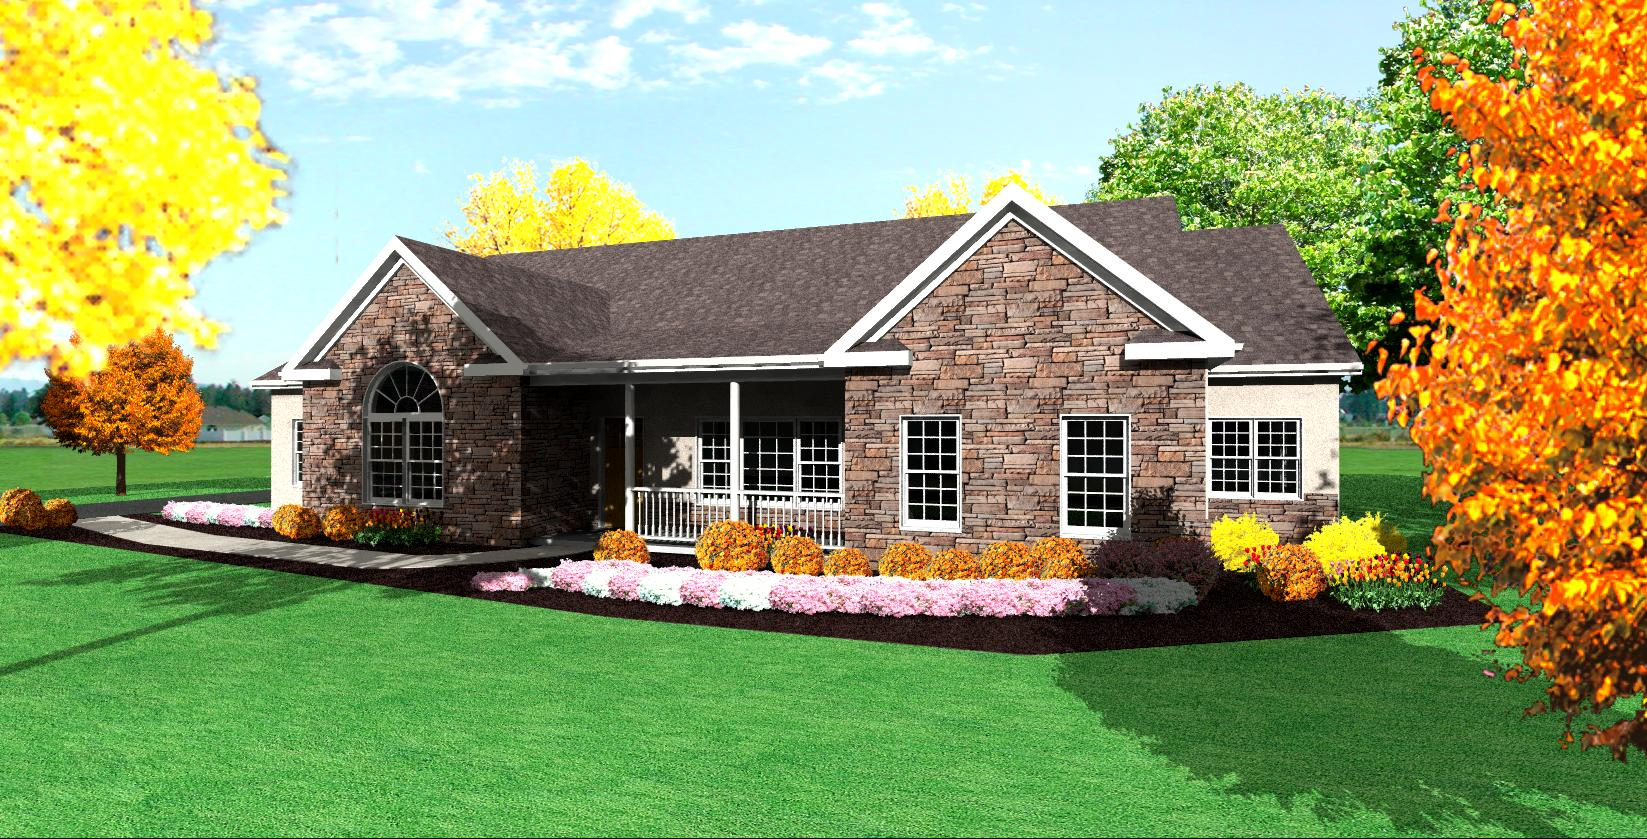 One story ranch house plans one story ranch house interior for One story house plans with interior photos